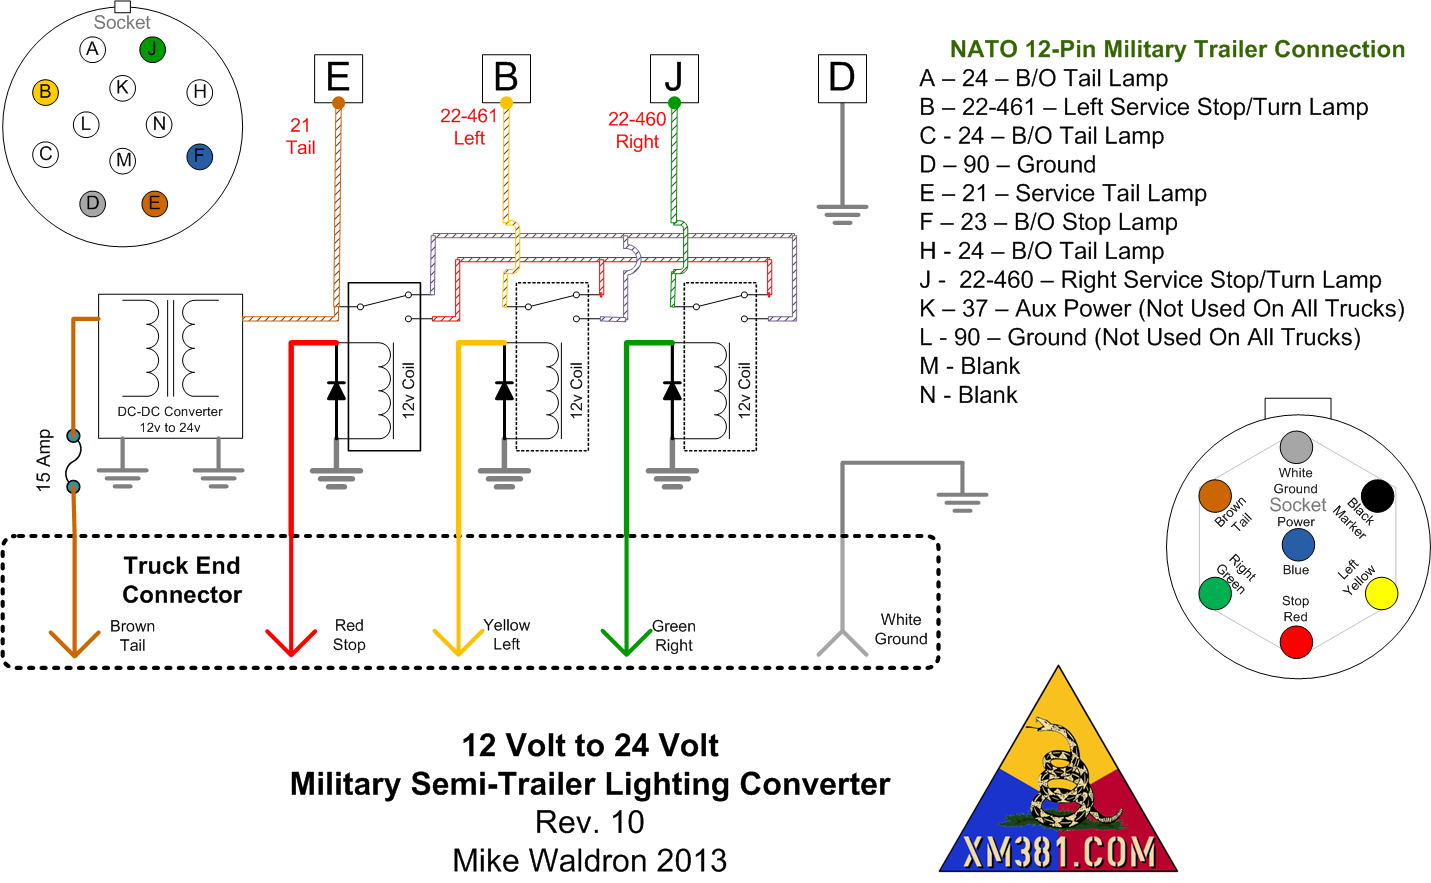 Xm381 12 Volt Civllian Truck To 24 Military Trailer Lighting Block Diagram Of A Typical Rv System Semi